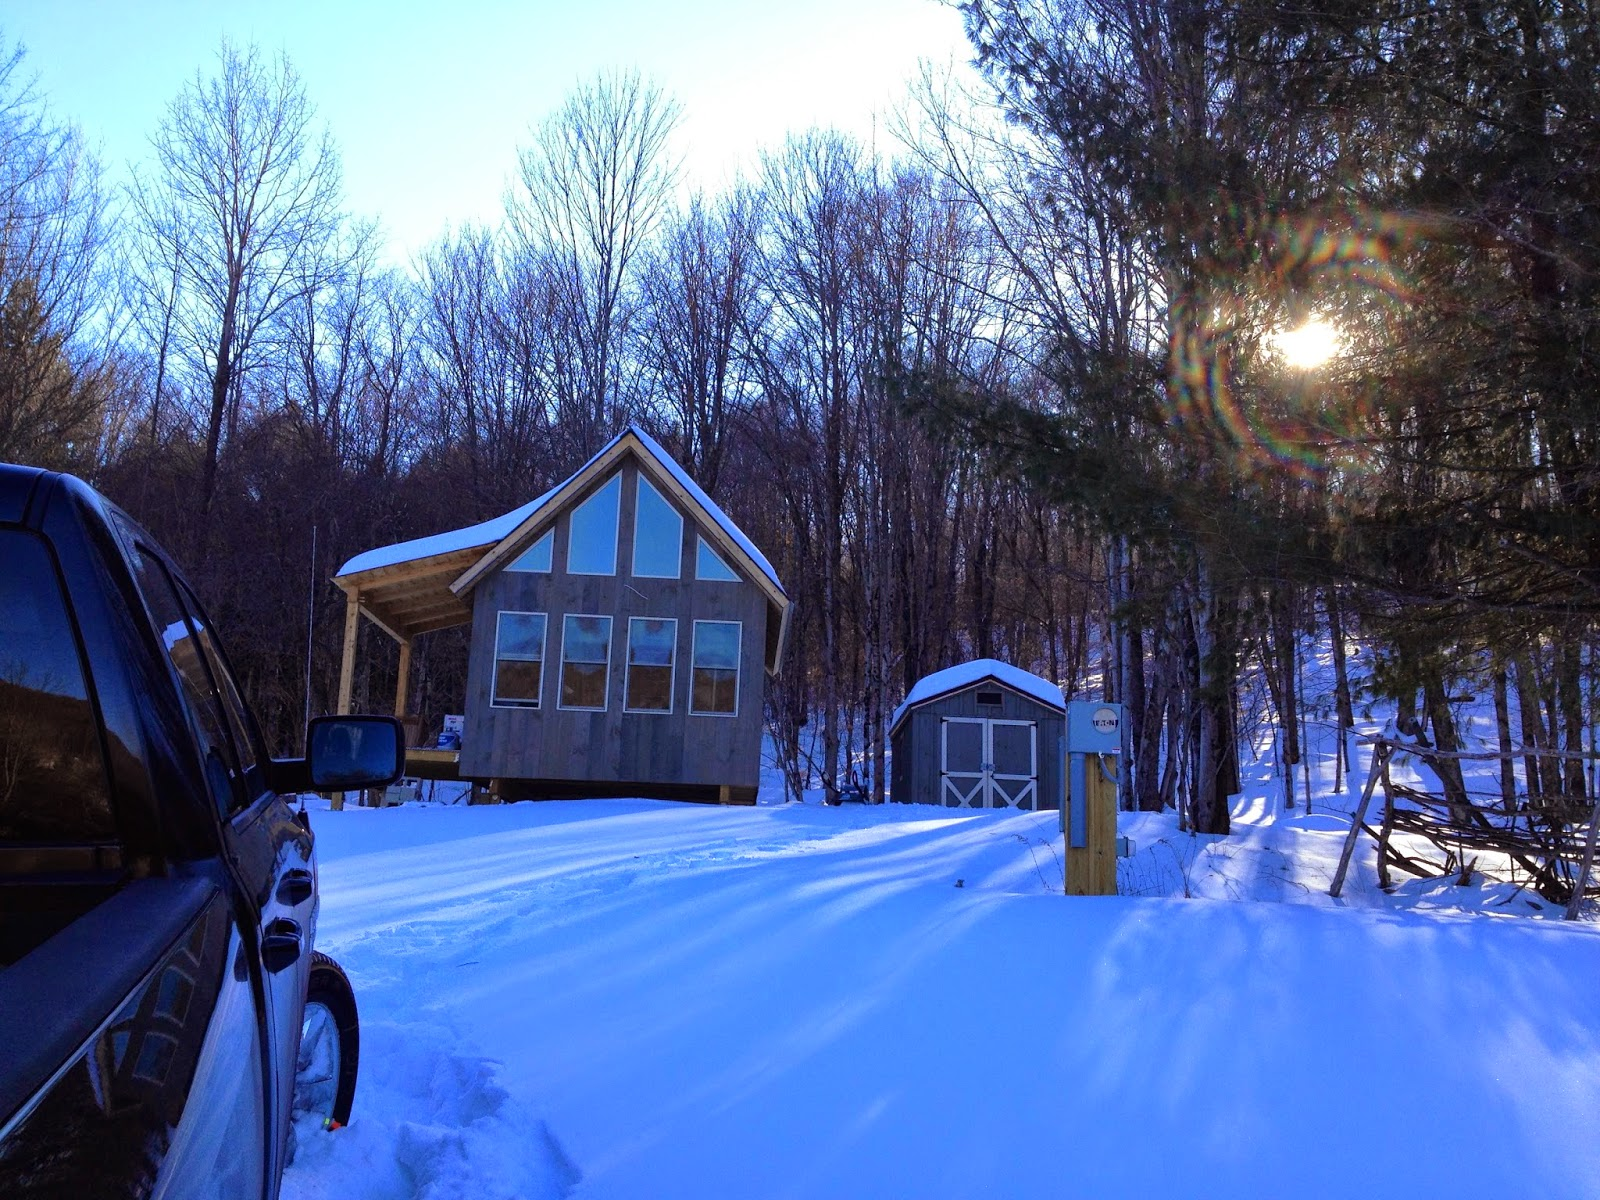 Adam And Karen S Tiny House In Equinunk Pa Snowed In